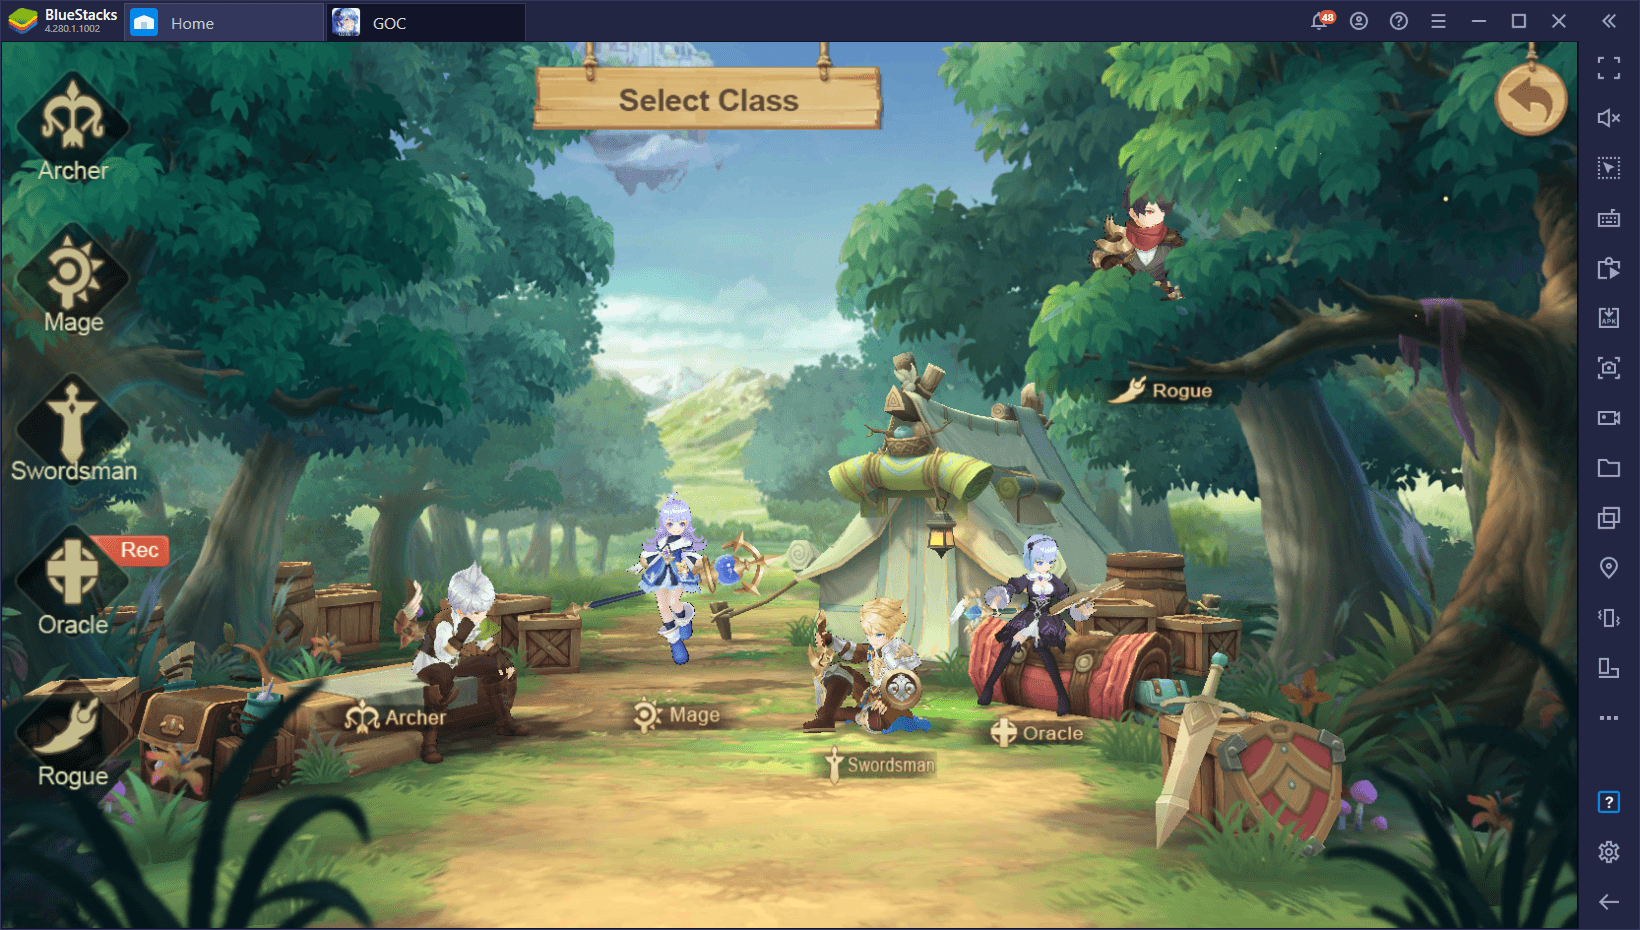 Beginner Tips and Tricks for Guardians of Cloudia – Start Your Journey on the Right Track